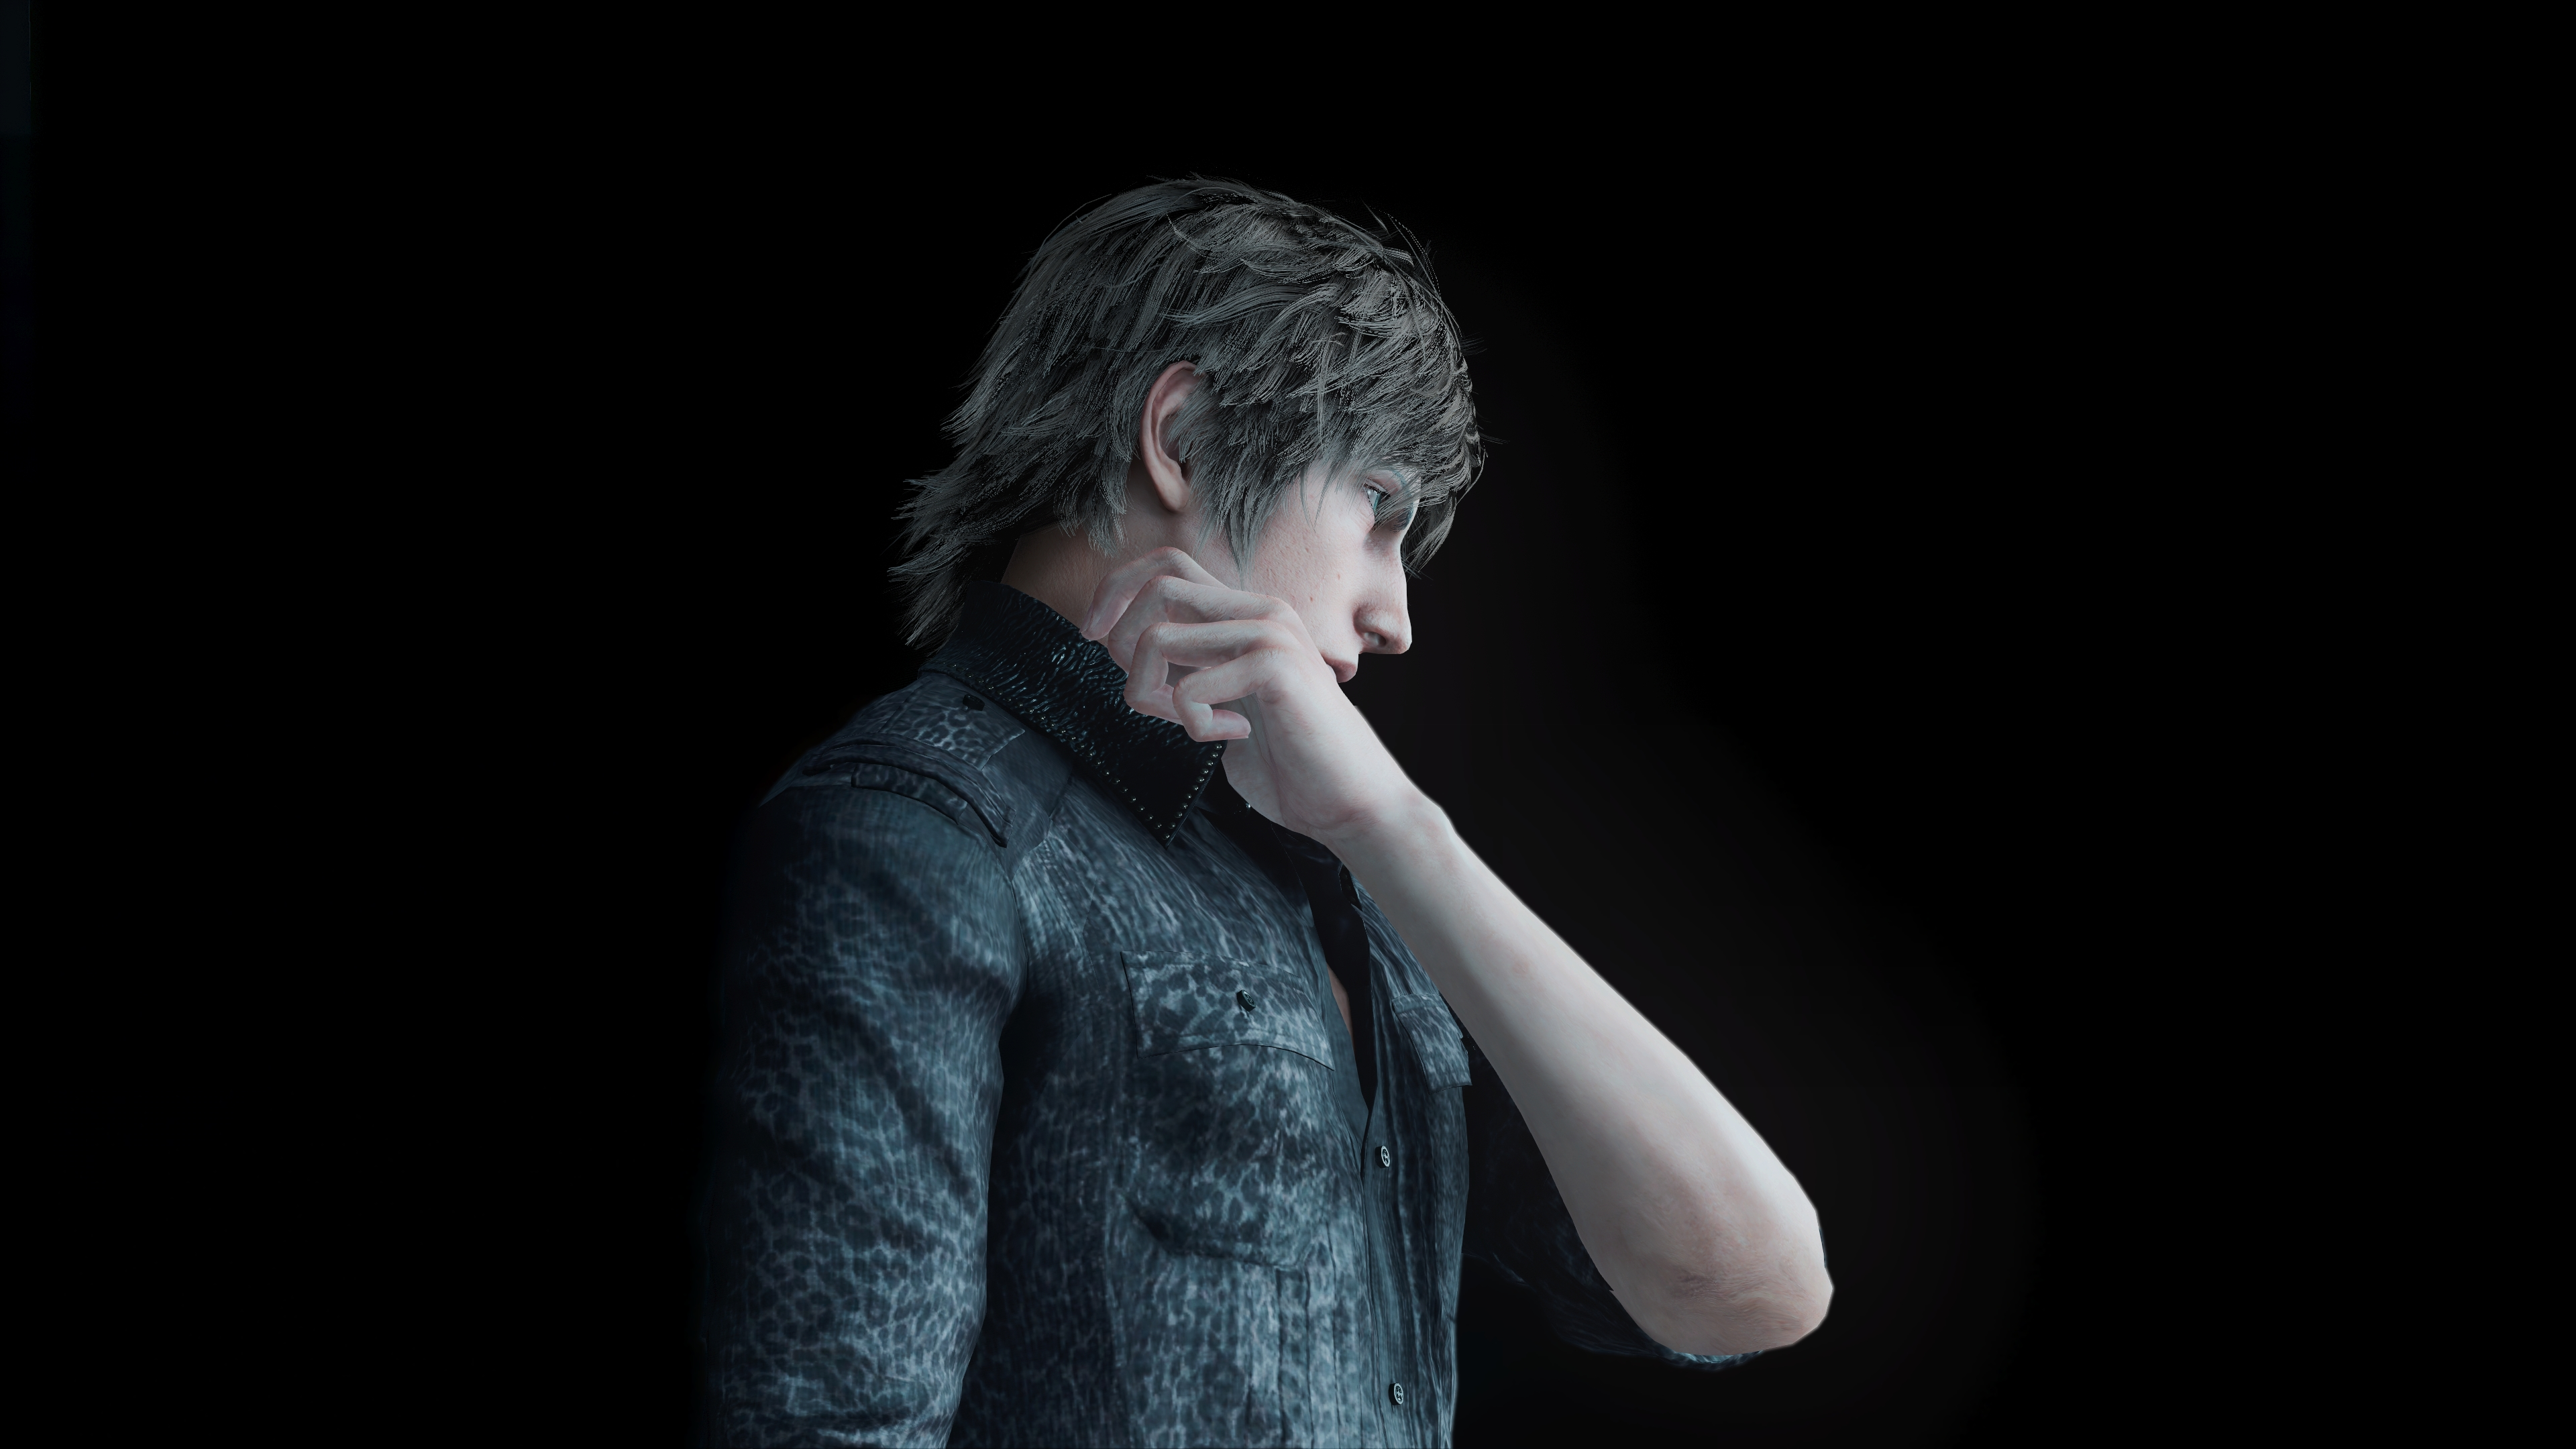 Final Fantasy XV Windows Edition: Ansel, Performance and